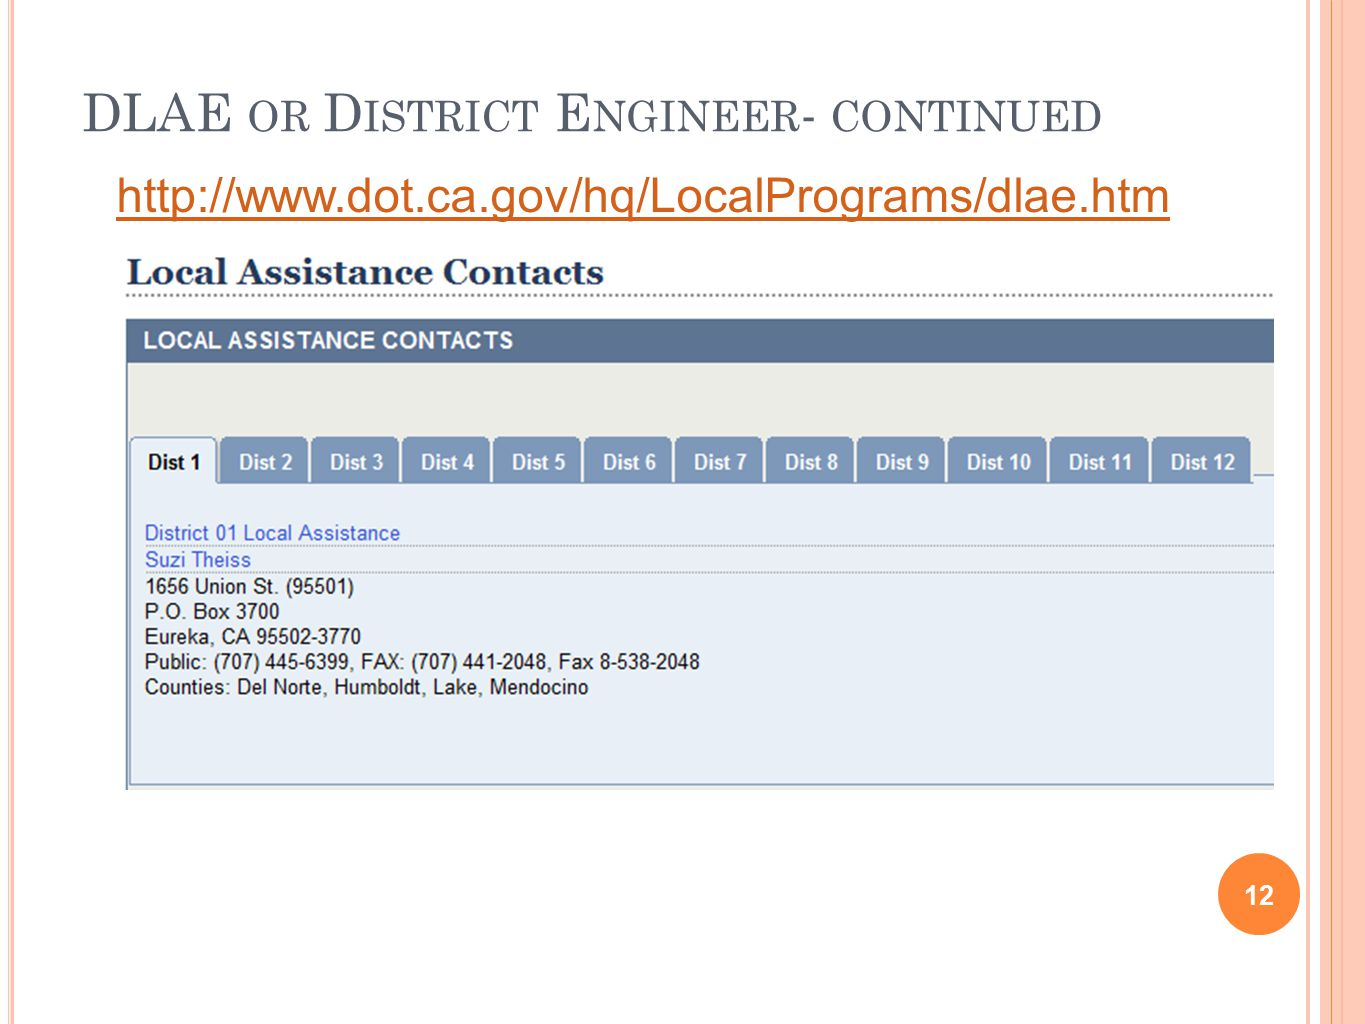 DLAE OR D ISTRICT E NGINEER - CONTINUED 12 http://www.dot.ca.gov/hq/LocalPrograms/dlae.htm